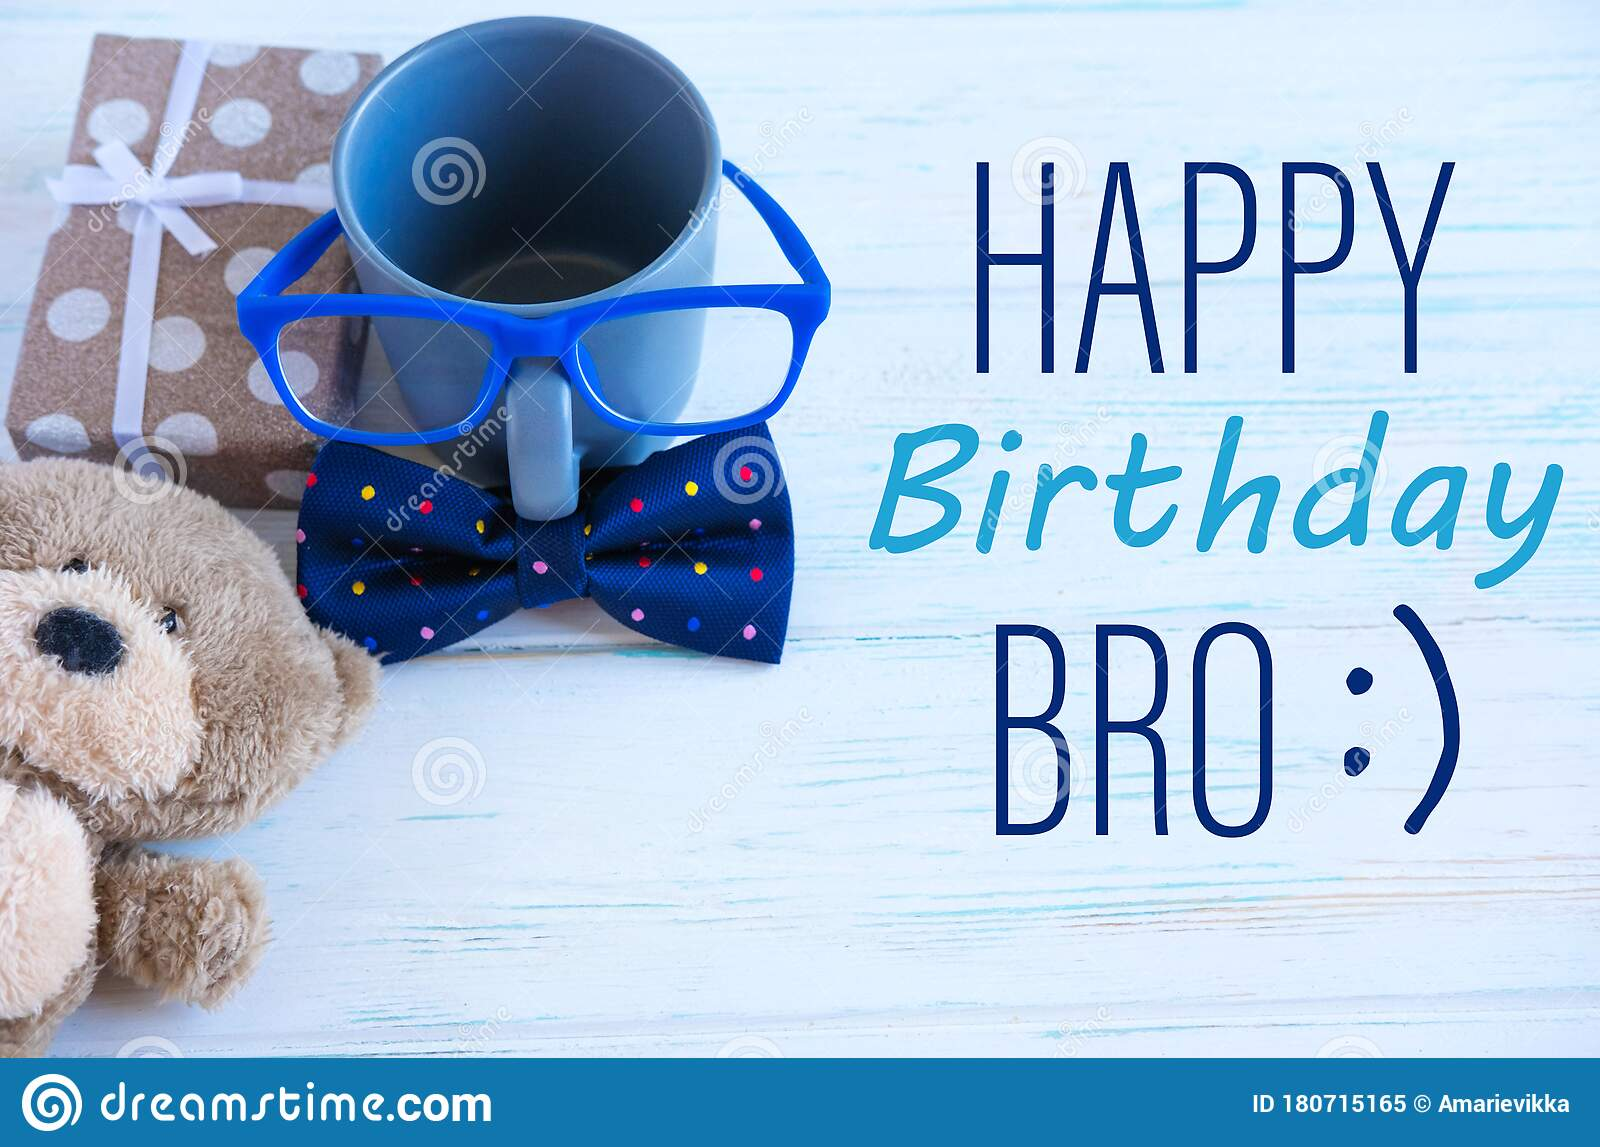 Happy Birthday Bro Brother And Friend Birthday Greeting Card Design Tie Butterfly Cup And Toy Bear Stock Image Image Of Background Concept 180715165